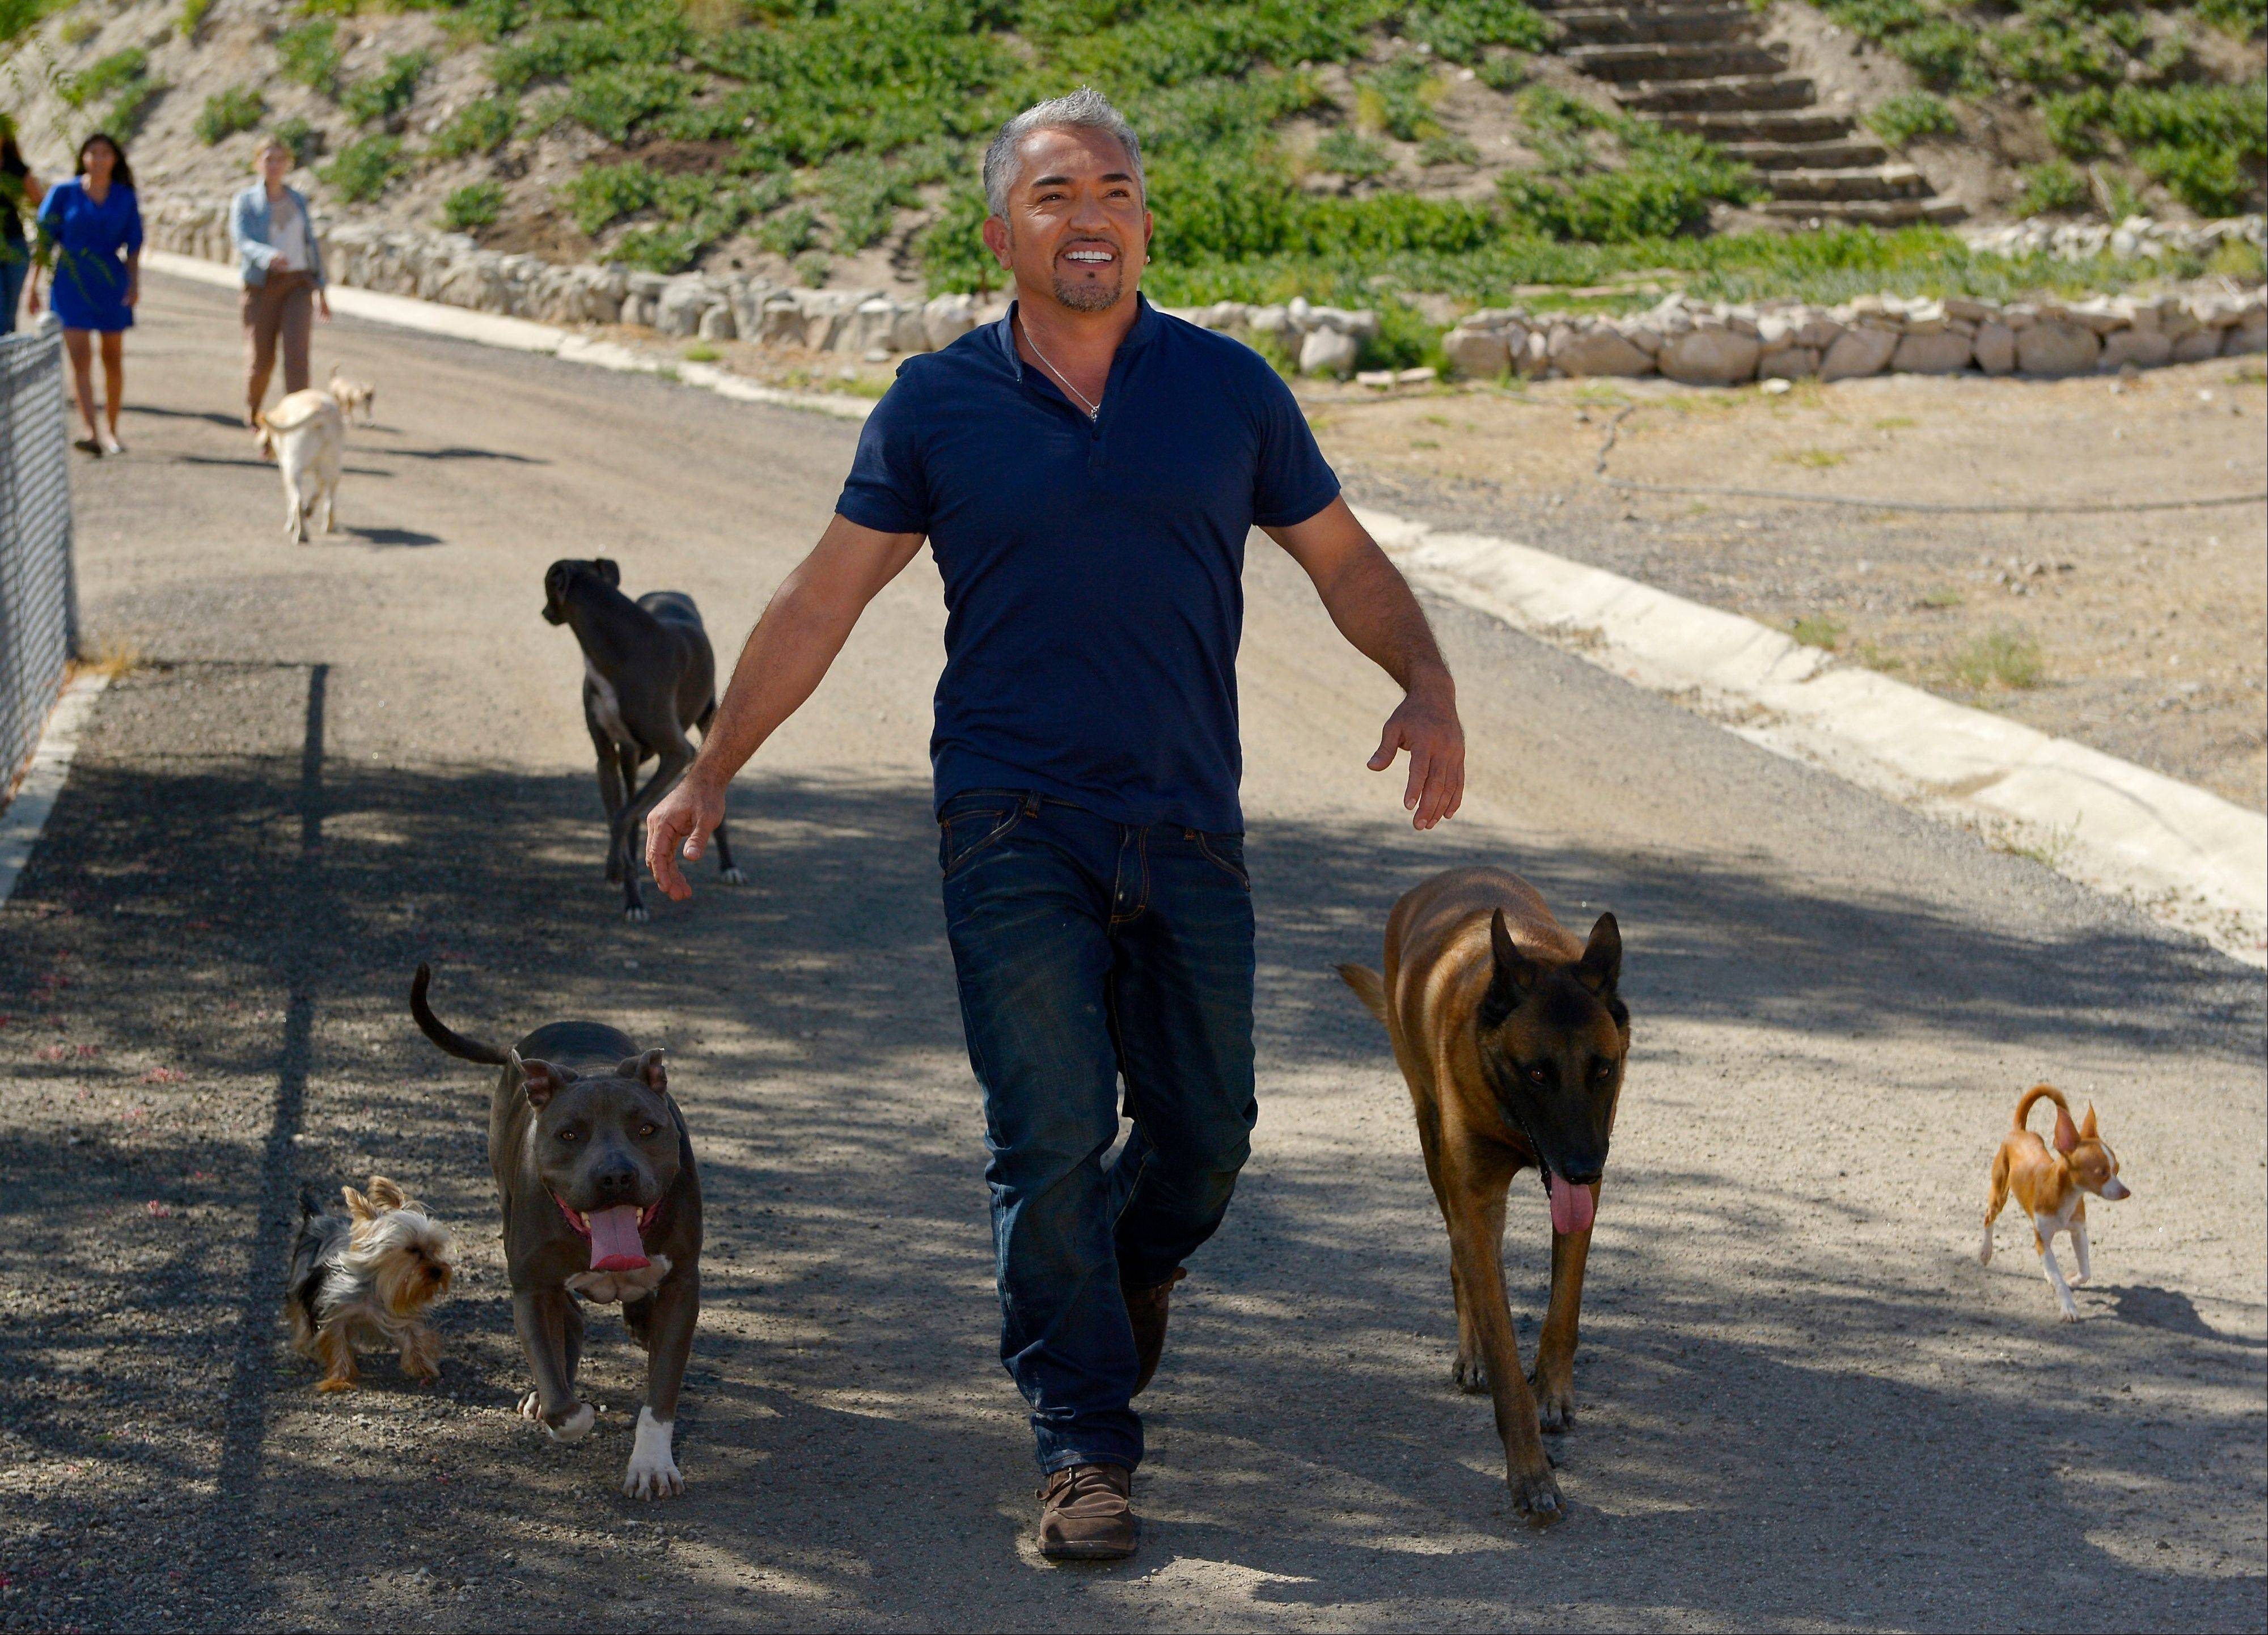 In this Oct. 18, 2012 photo, Cesar Millan walks down to his horse stables with his dogs at his Dog Psychology Center, in Santa Clarita, Calif. At 13, his dream was to become the best dog trainer in the world. At 21, alone and unable to speak English, he crossed the border and lived on the streets for two months before getting a job as a groomer and walker.